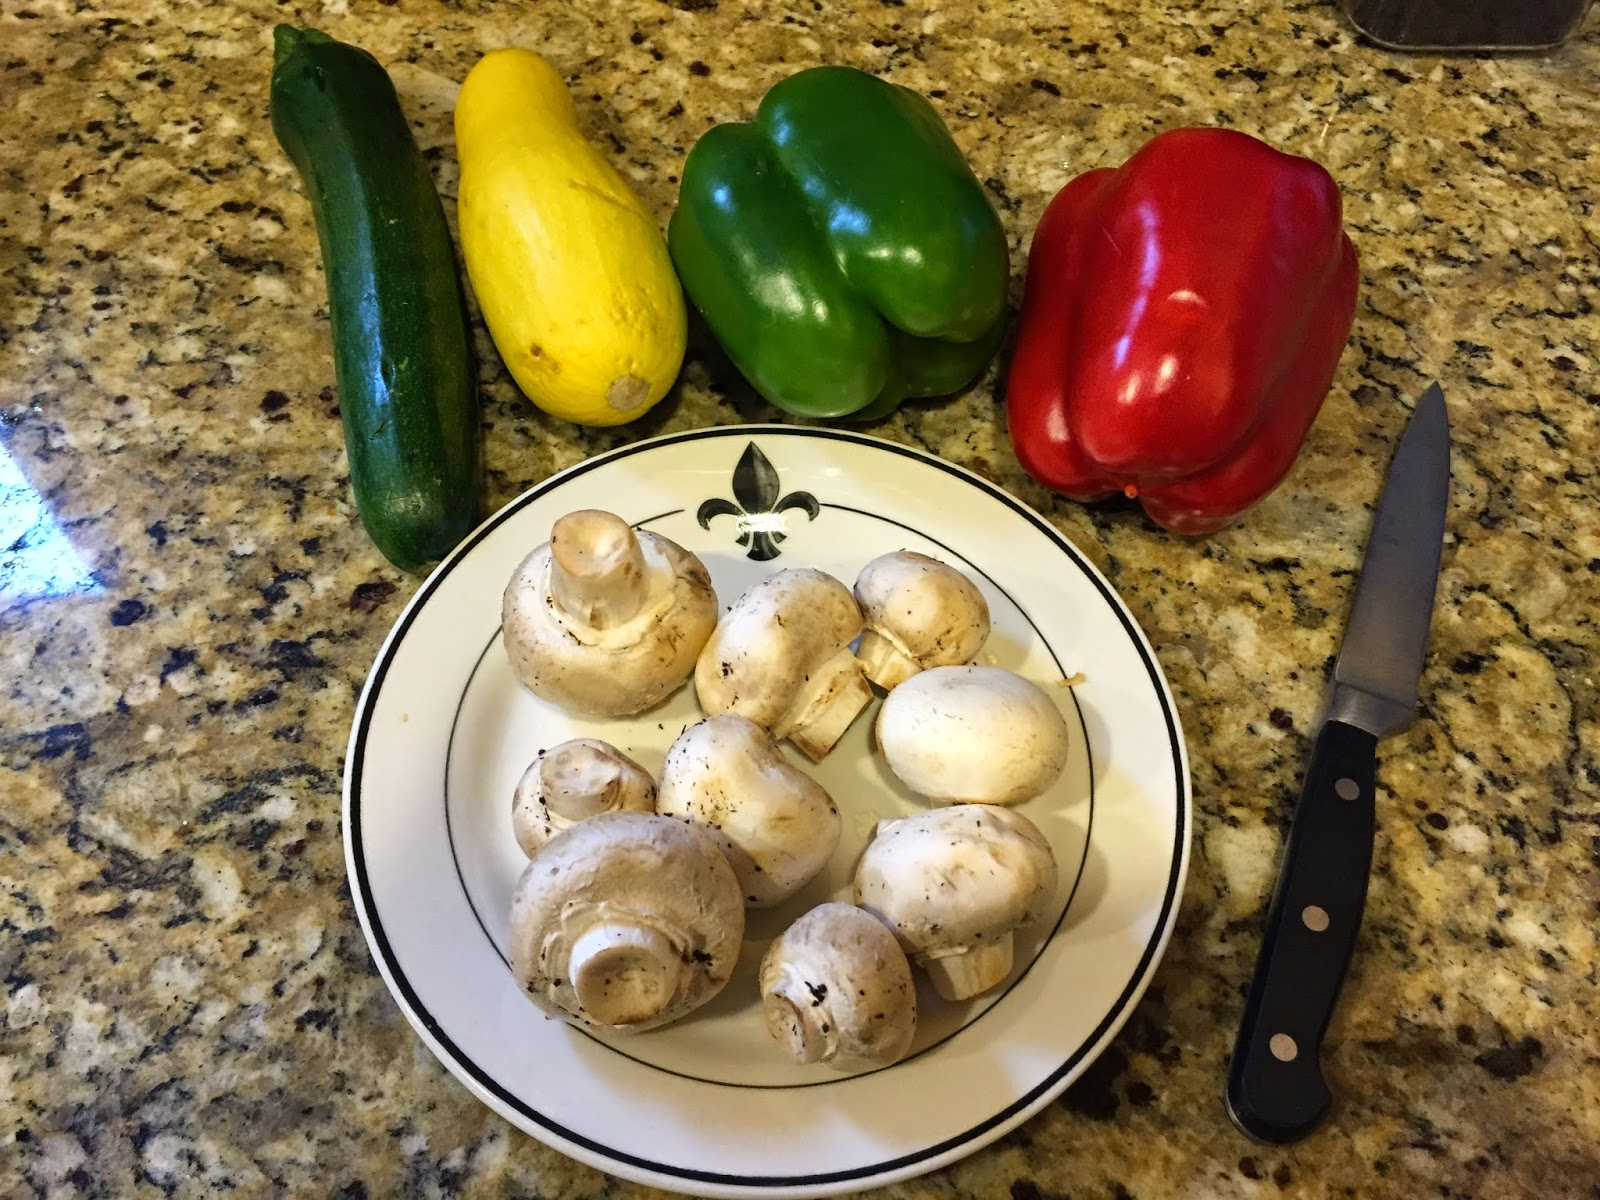 Vegetable preparation for pasta primavera